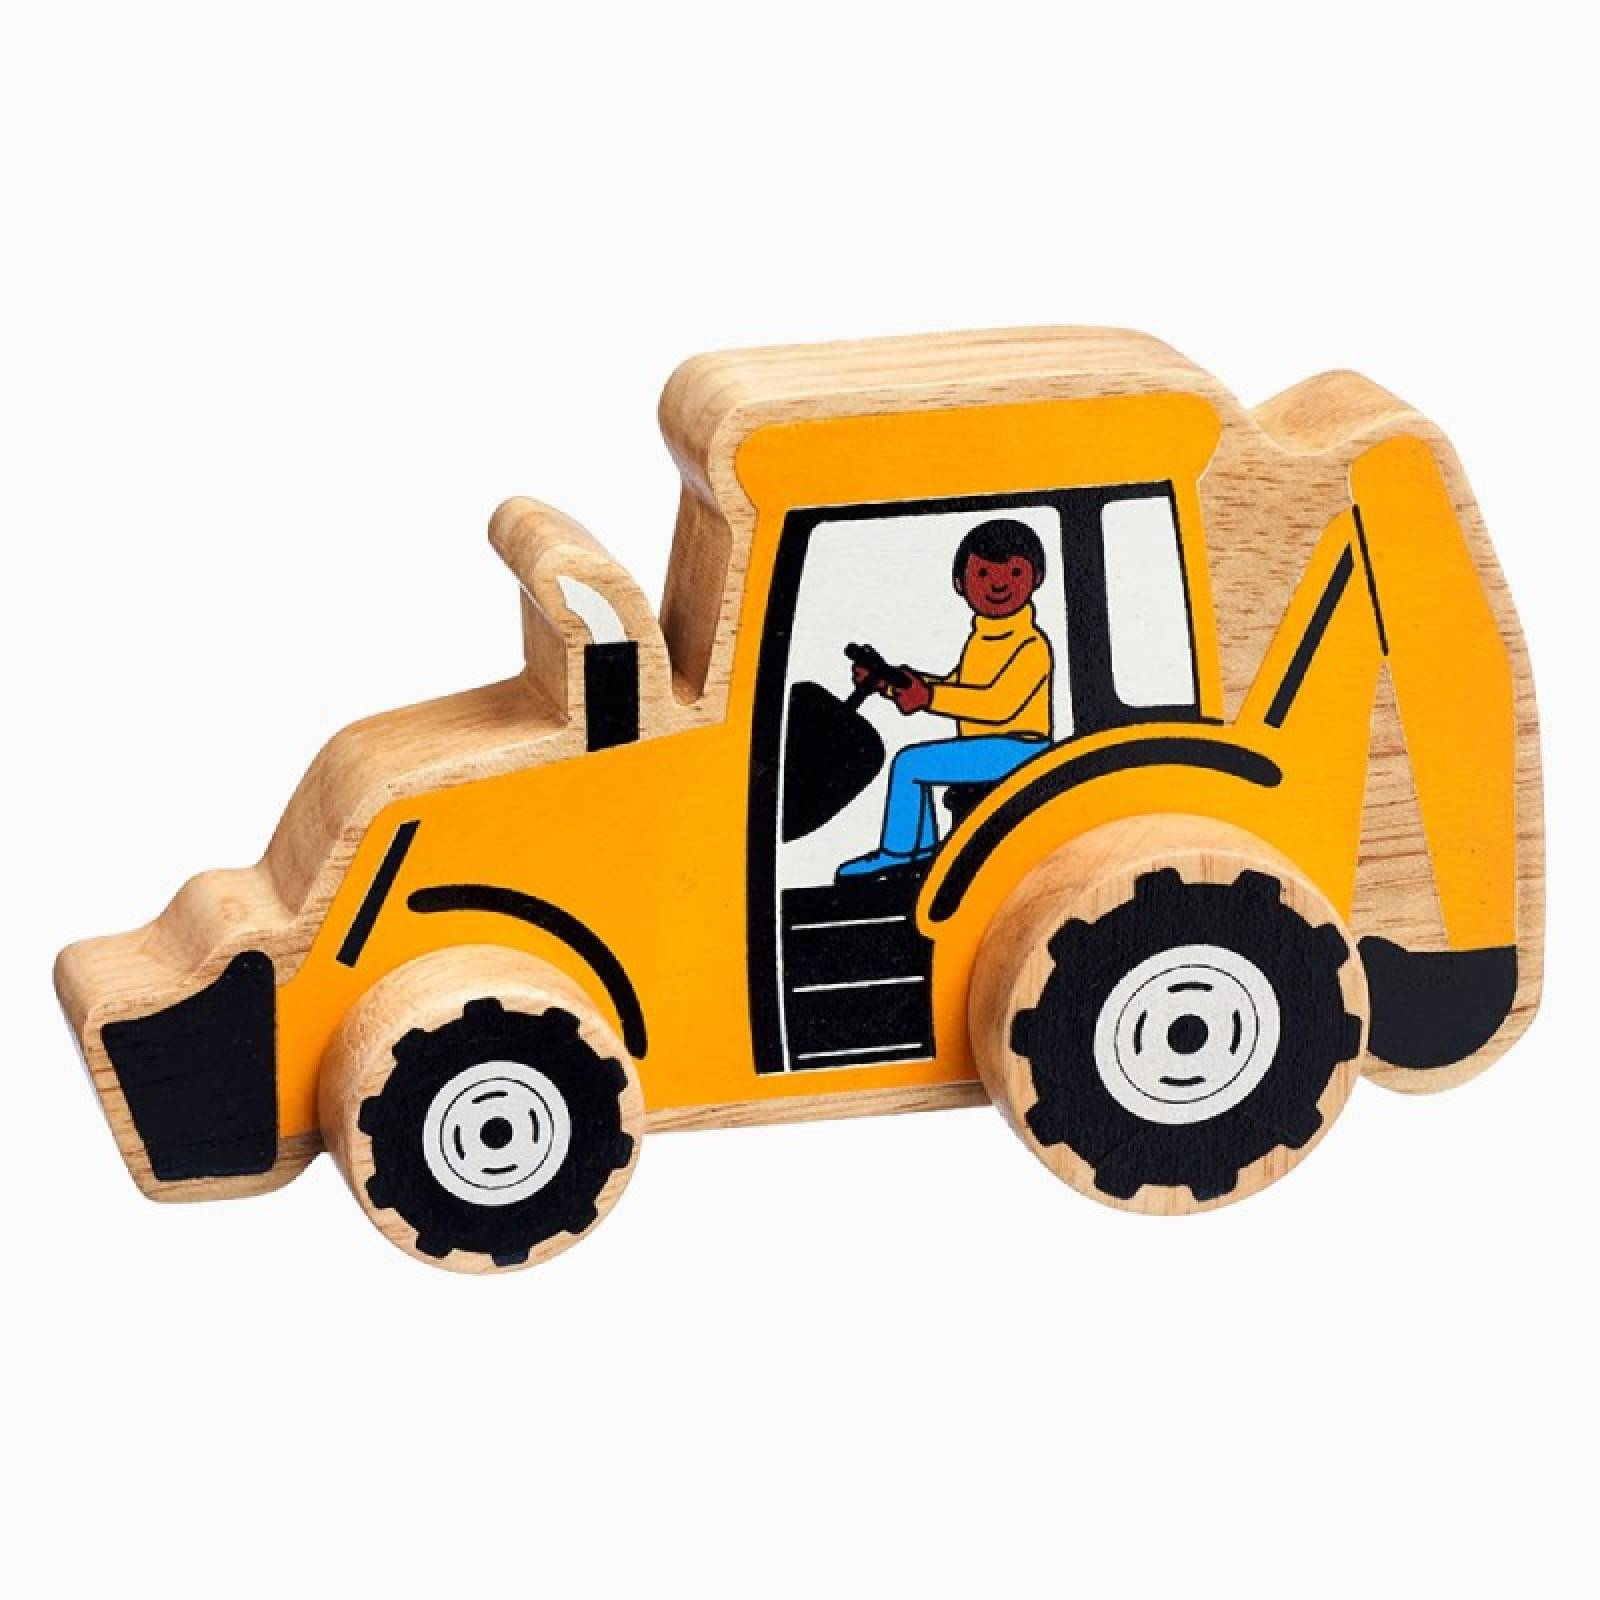 Little Wooden Digger Made From Natural Wood By Lanka Kade